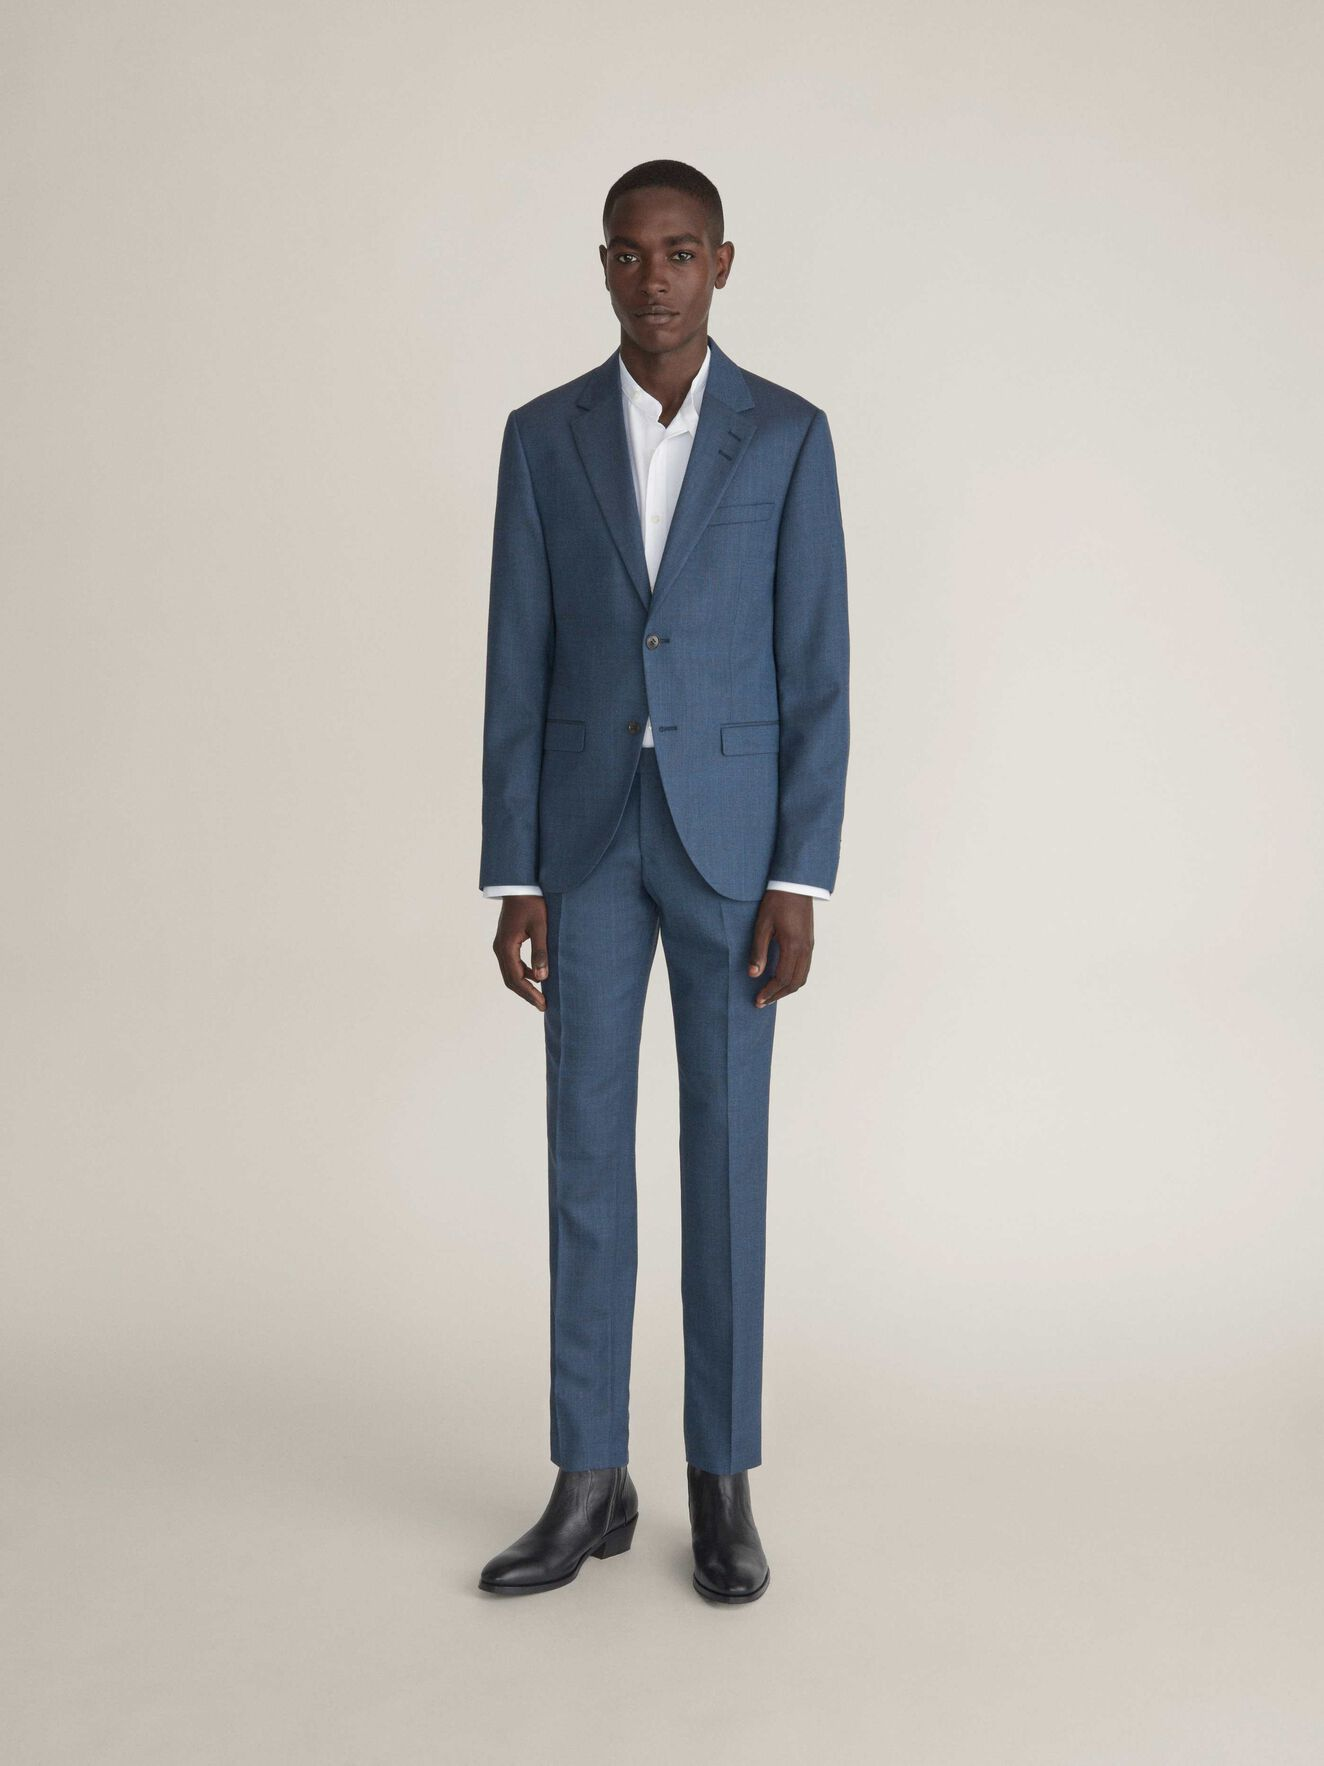 Jamonte Blazer in Silver Blue from Tiger of Sweden